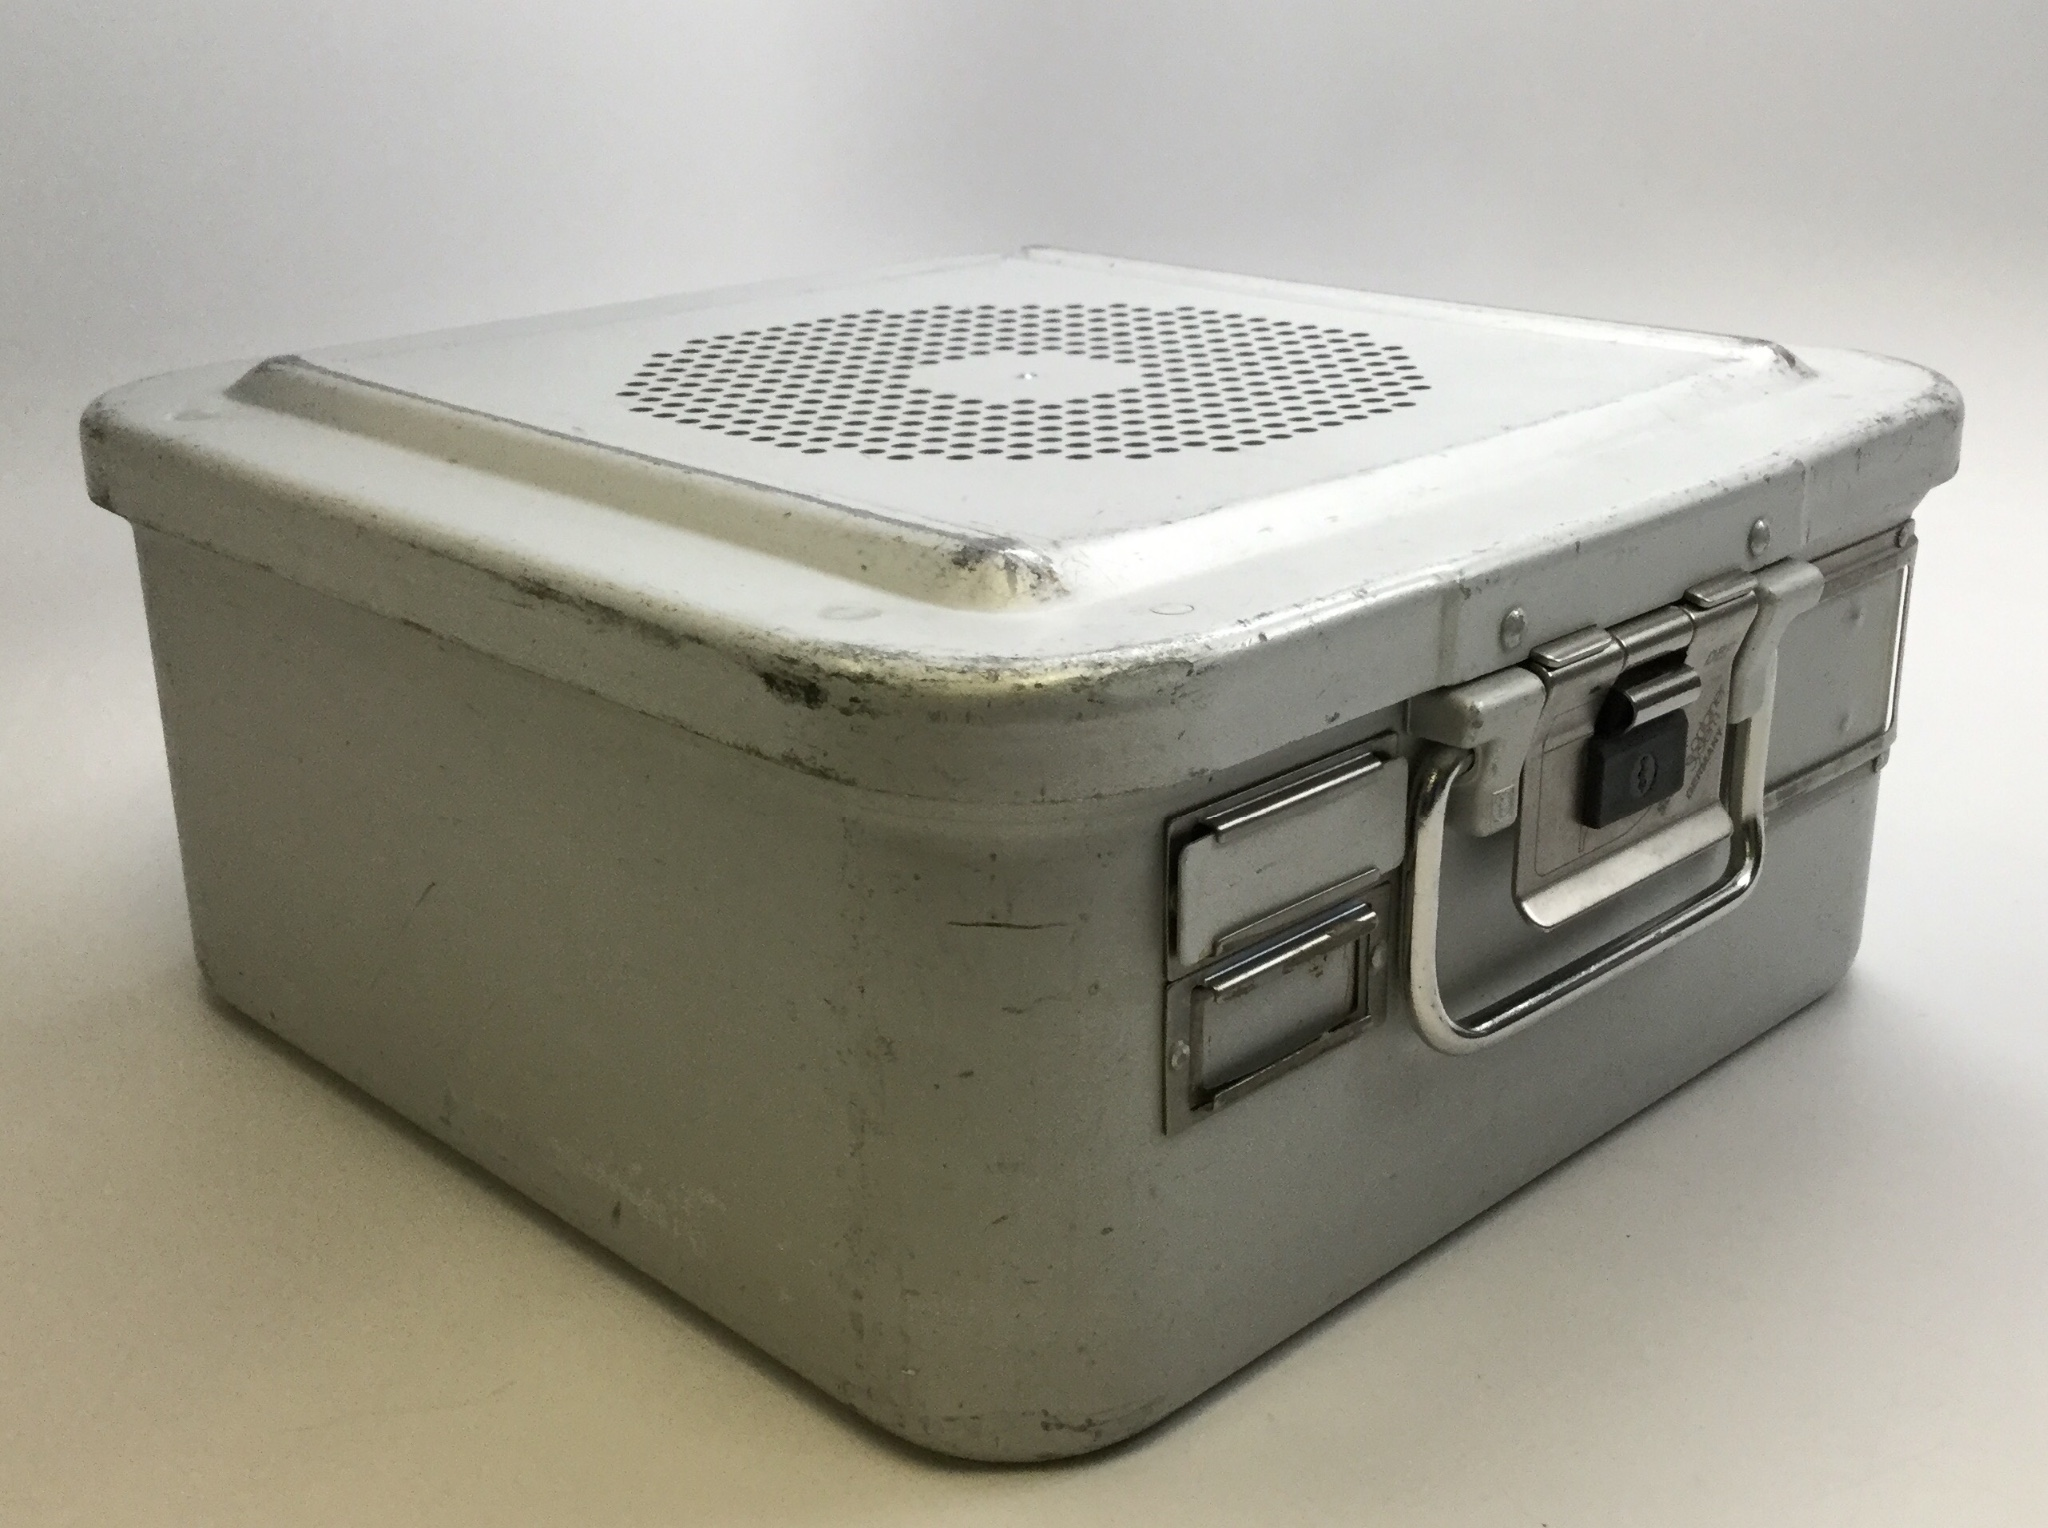 Aesculap TE673 DBGM Surgical Sterilization Container 11 x 11